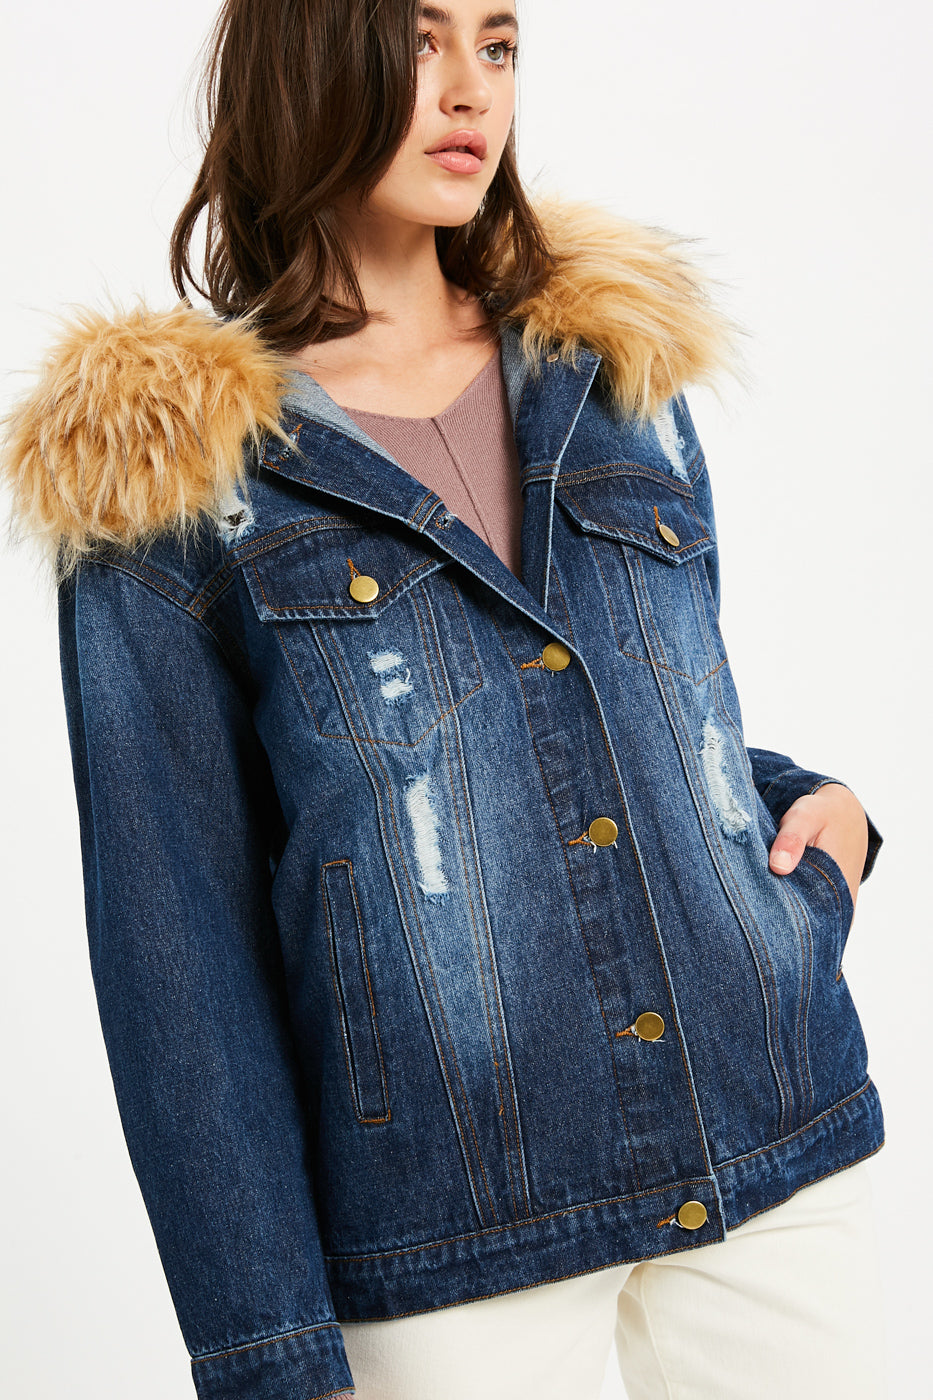 Distressed Denim Jacket with Removable Fur - Dark Denim